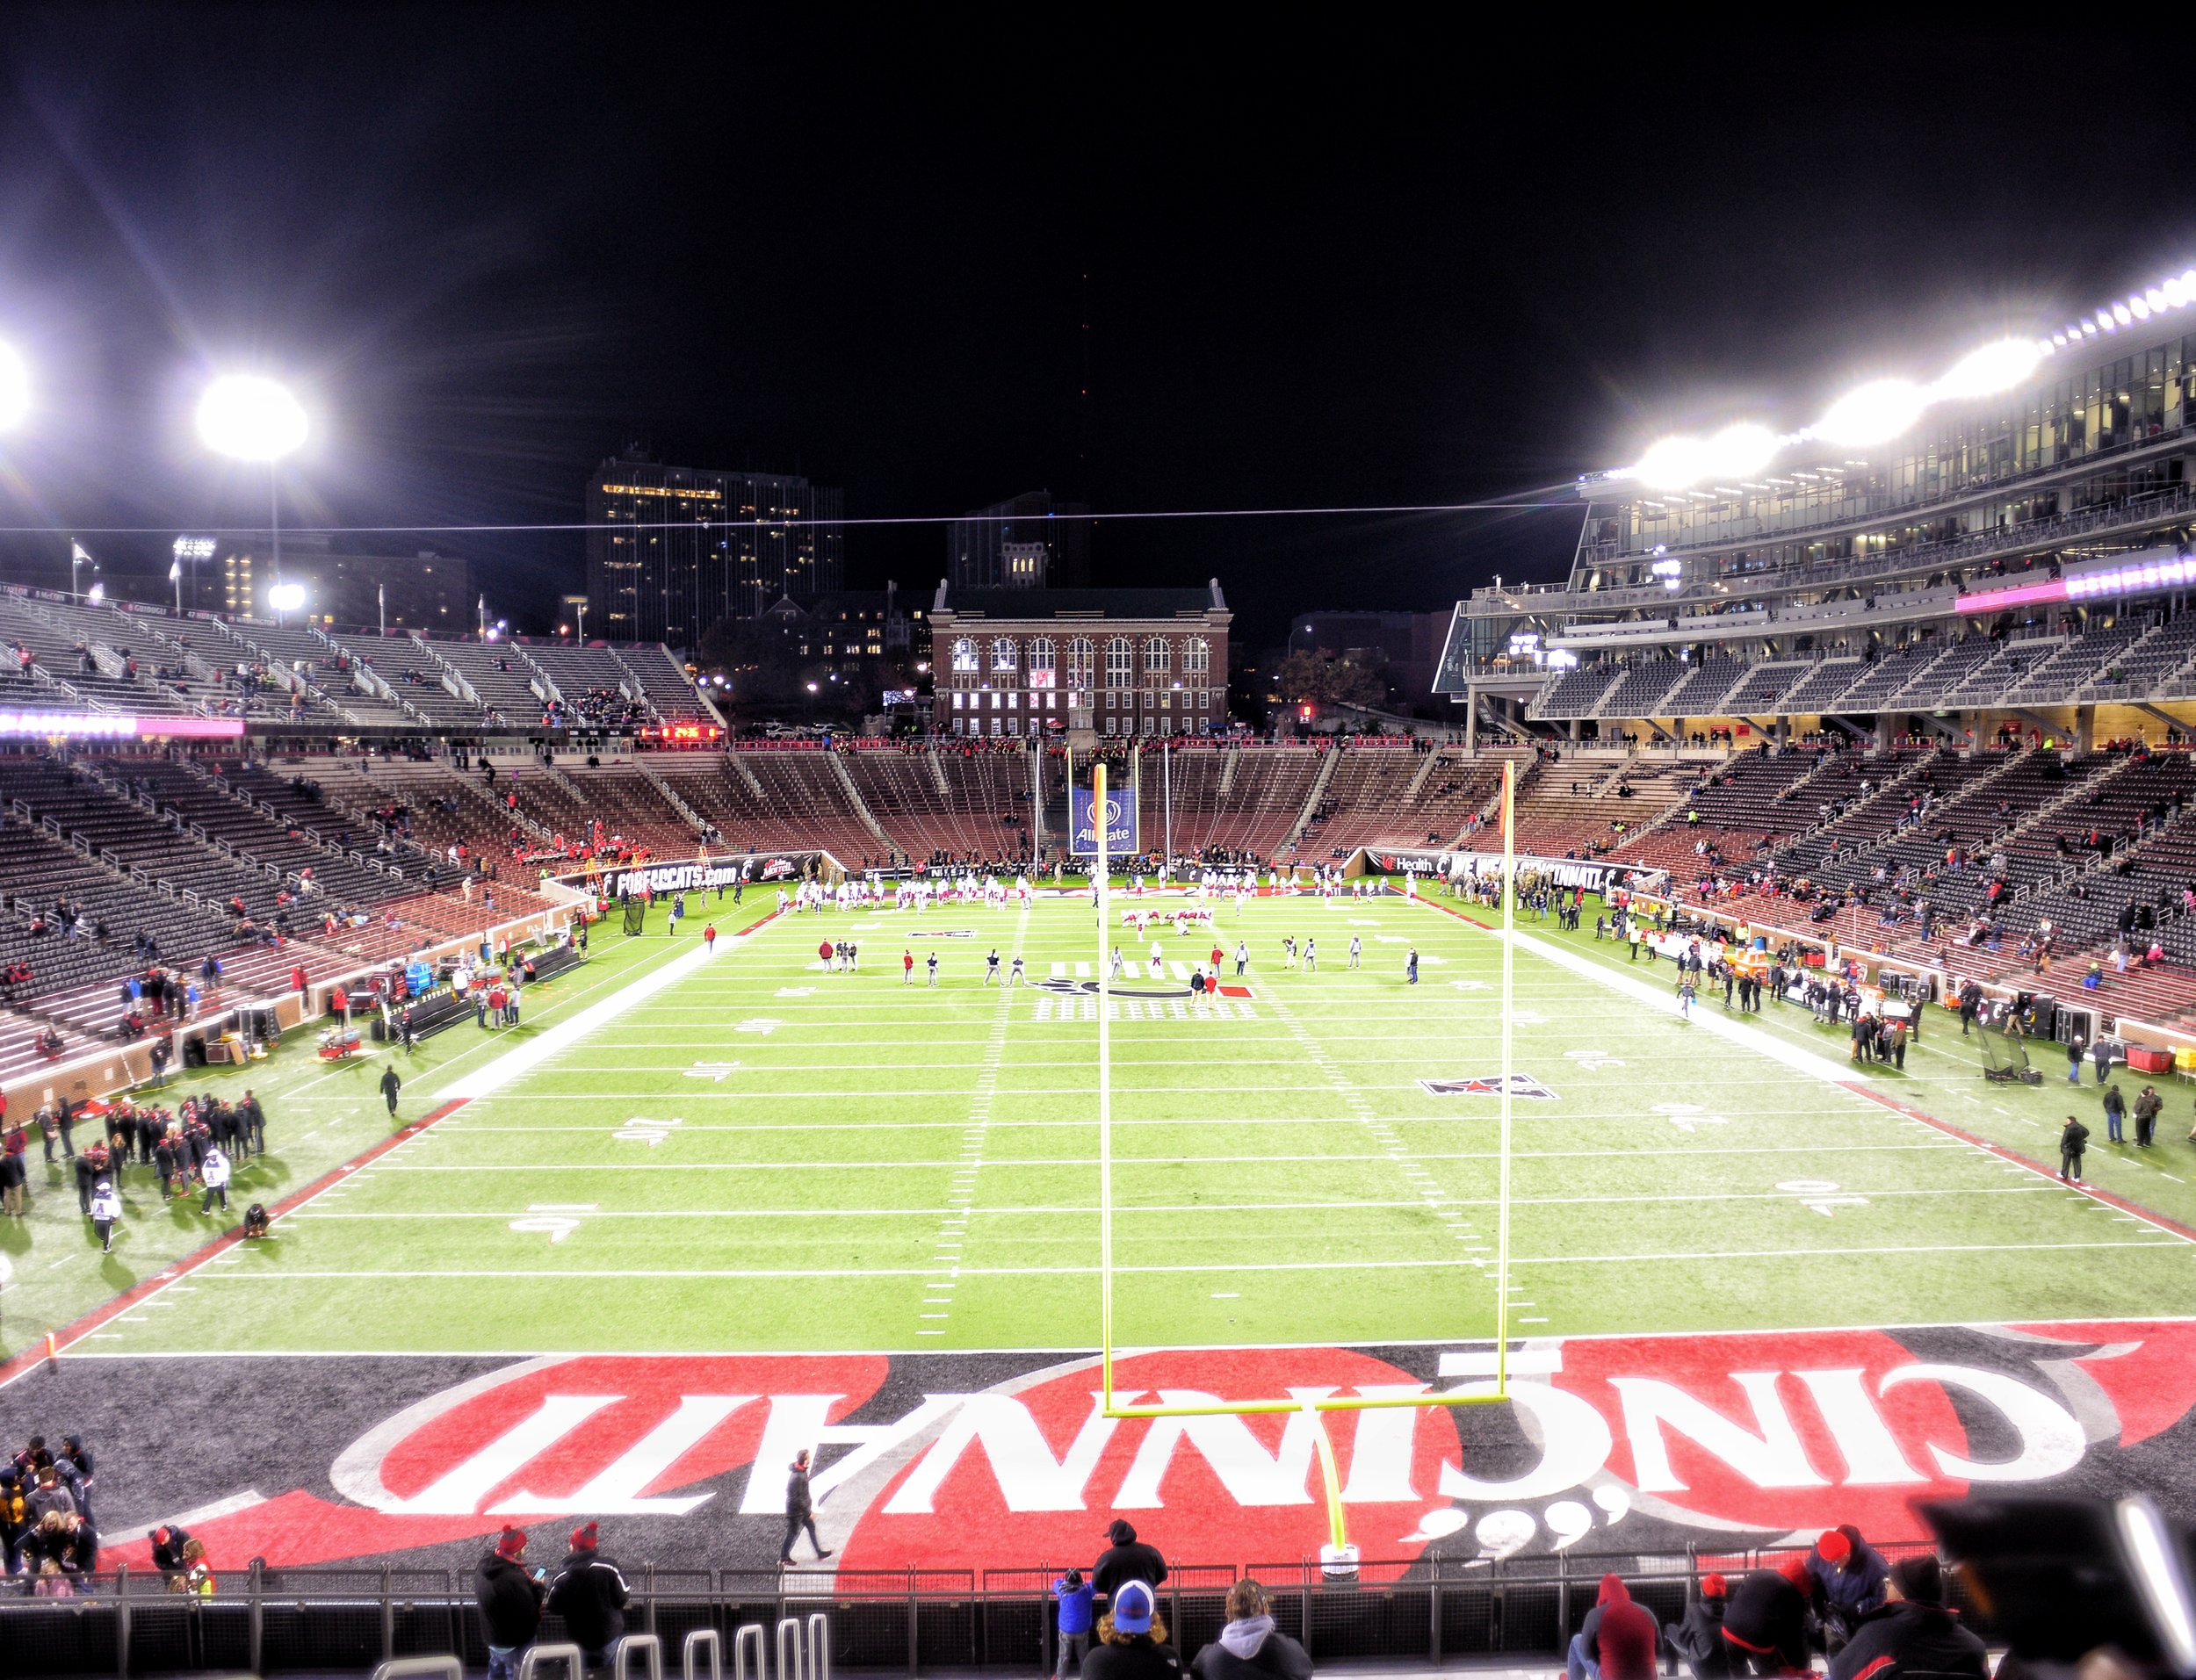 Cincinnati's Nippert Stadium,   originally built in 1915, is one of the 4 oldest on Campus stadiums in the country.